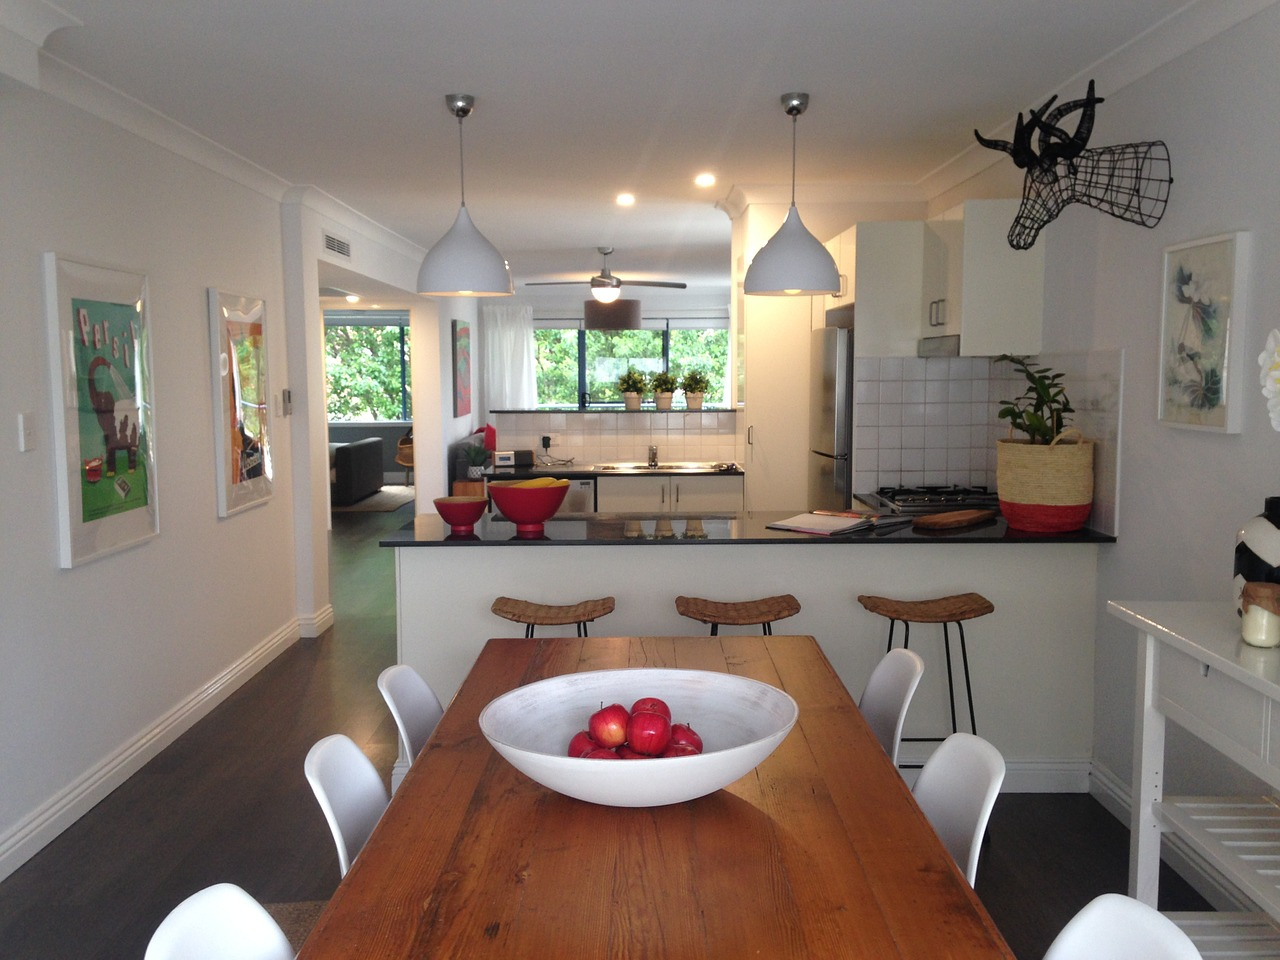 Sorting your kitchen before and after the move